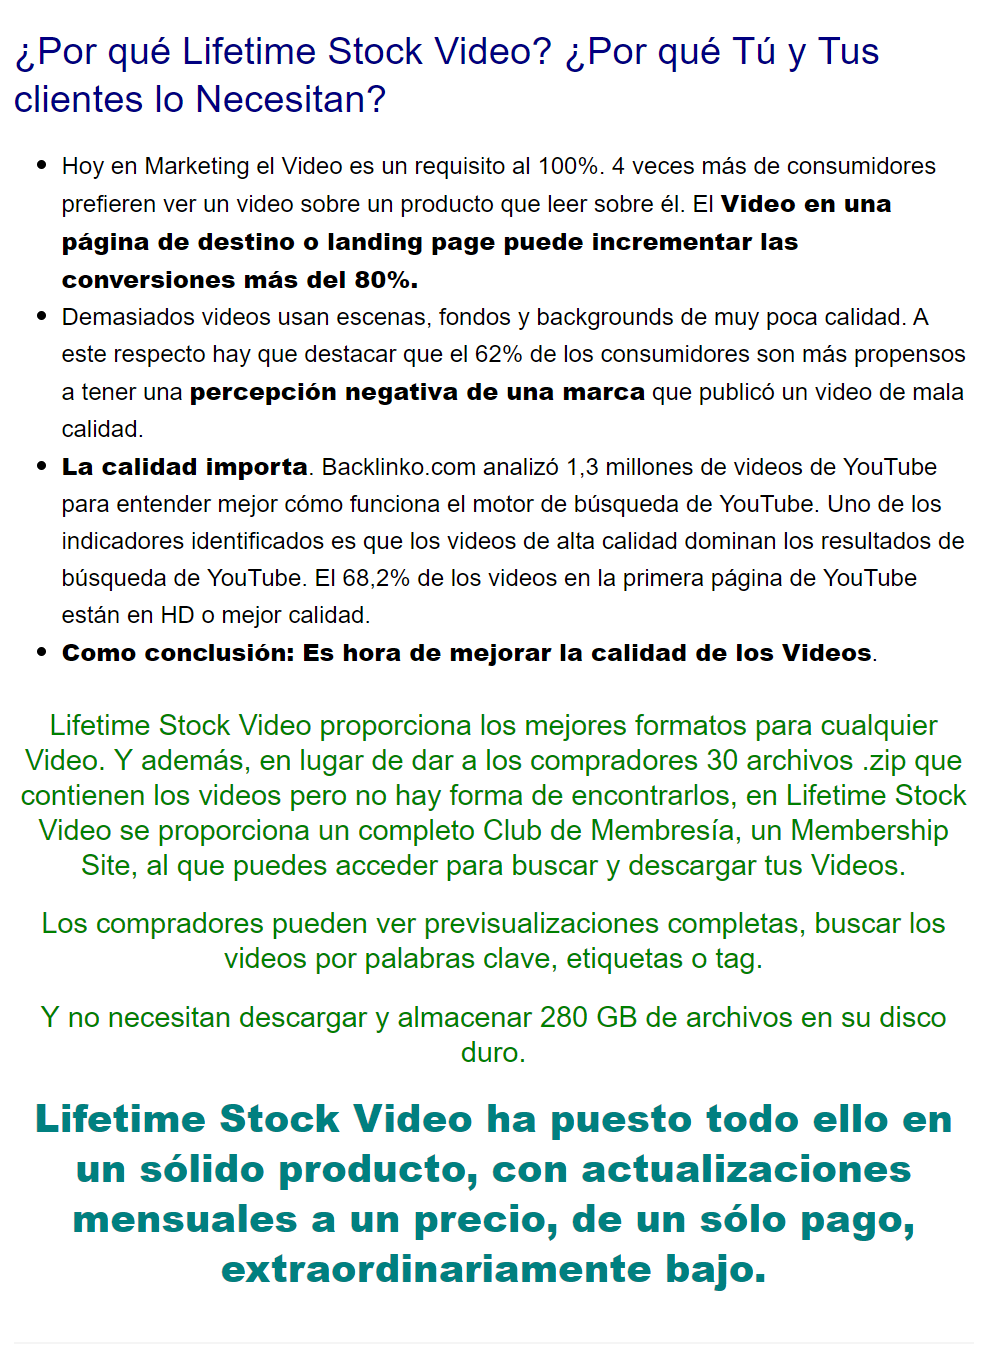 Lifetime-Stock-Video-Review-Bonos-ConYeco-LanzaPodcast